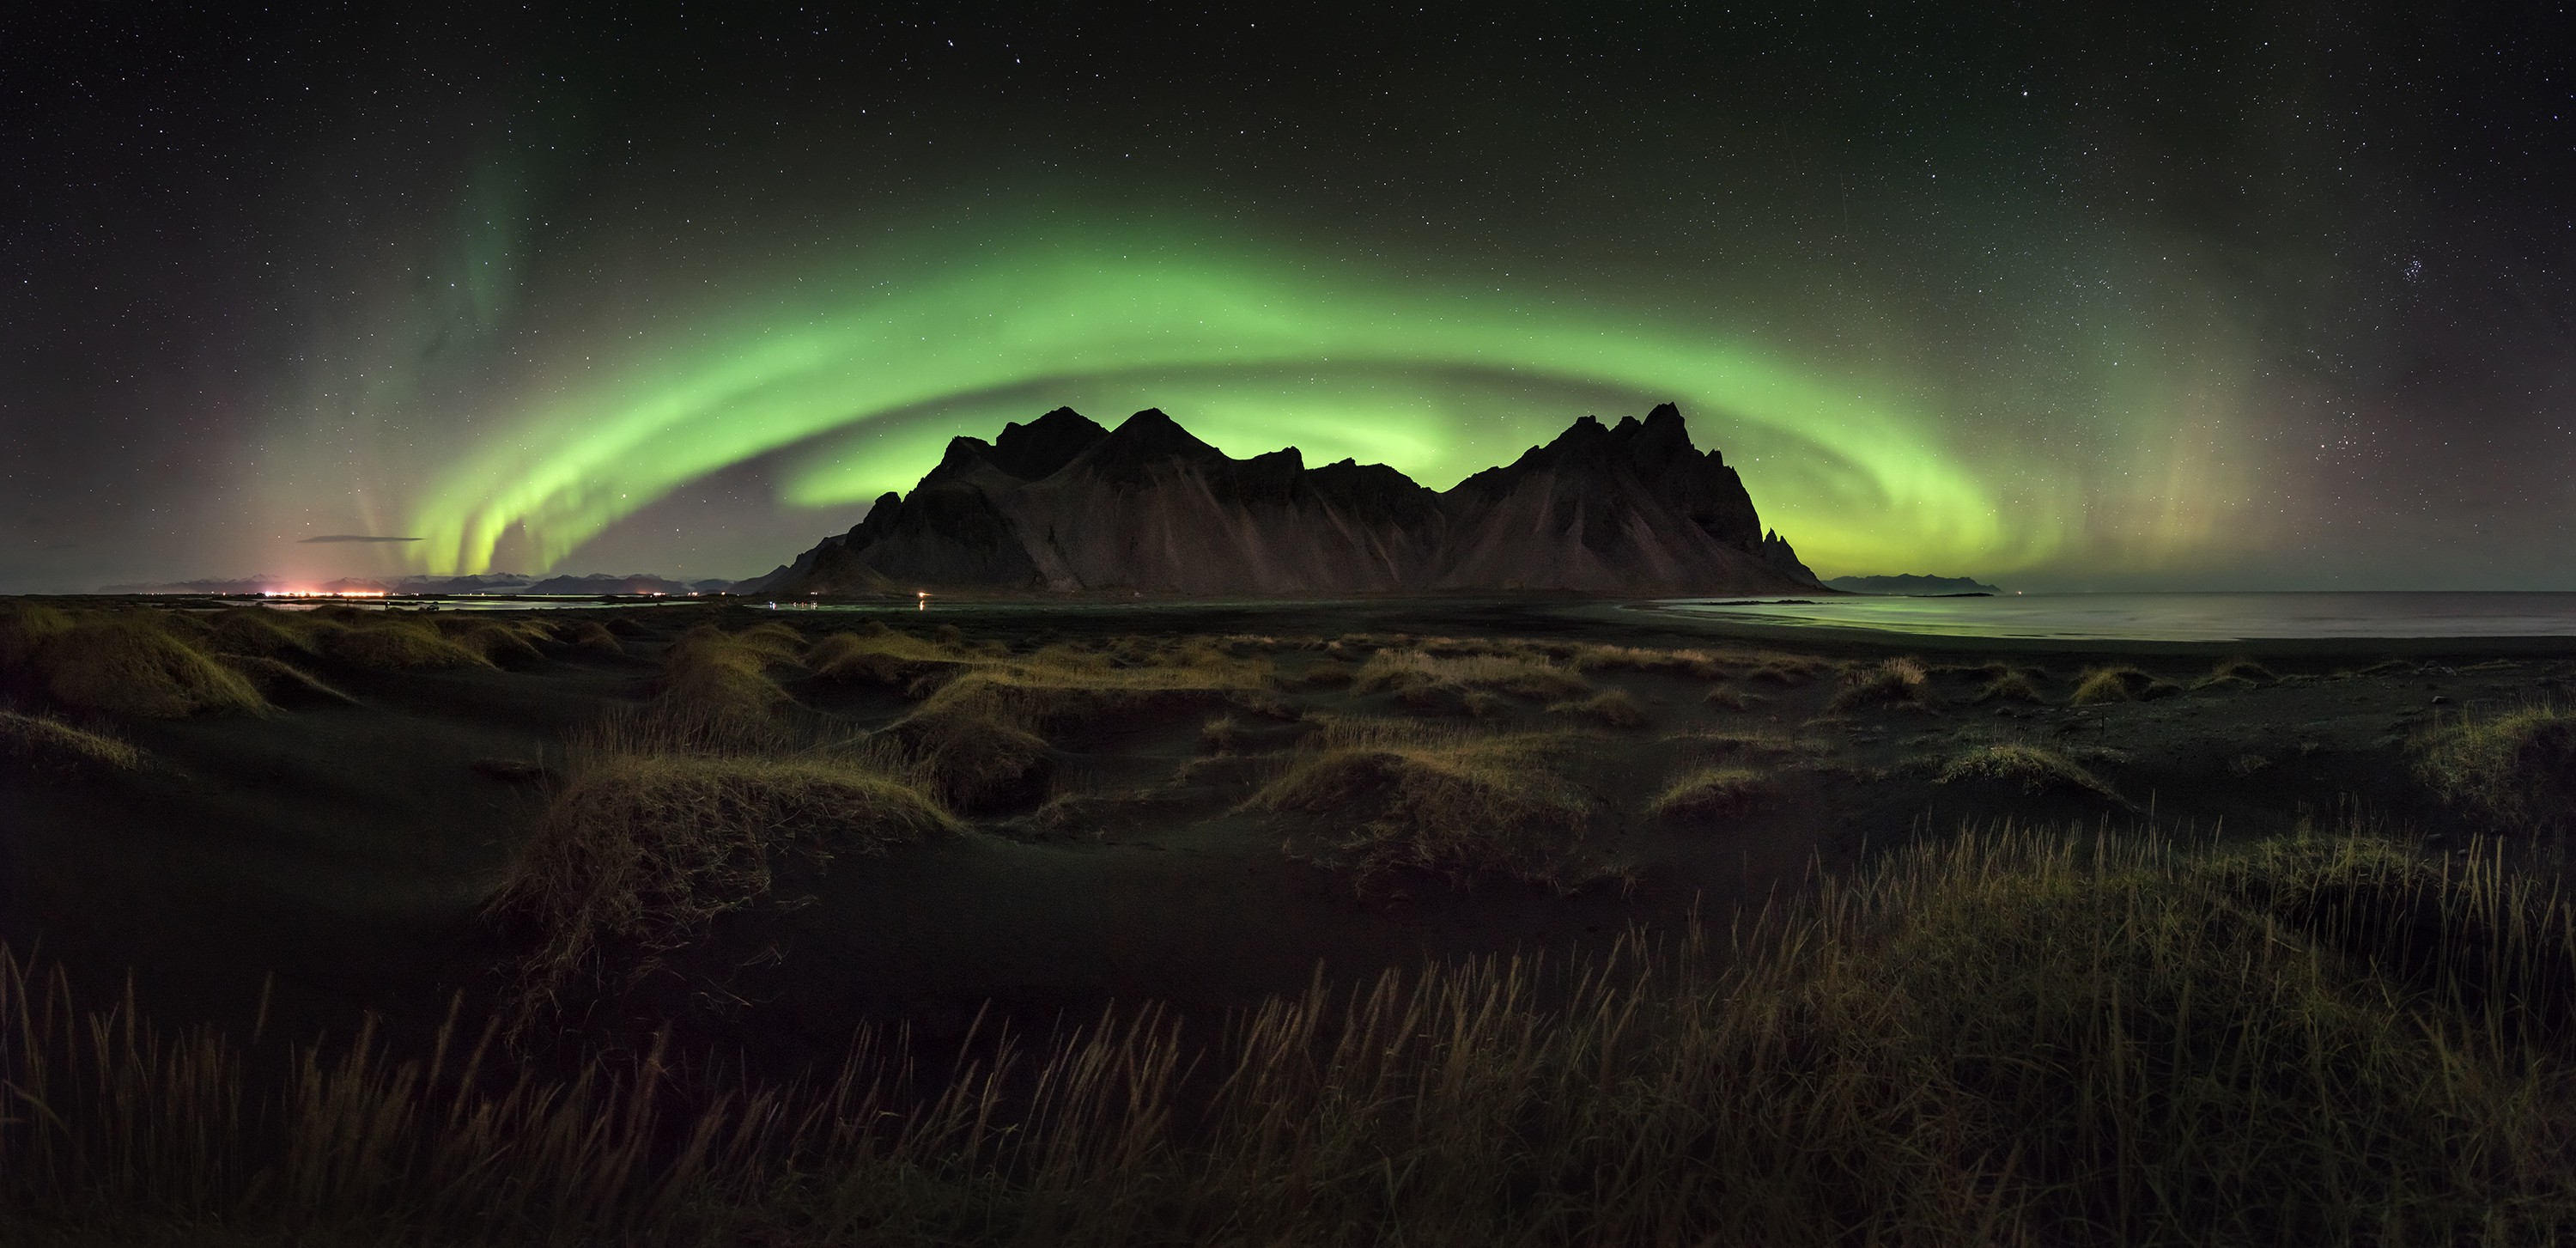 "A craggy range surrounded by a ""halo"" of green glowing northern lights in the sky"